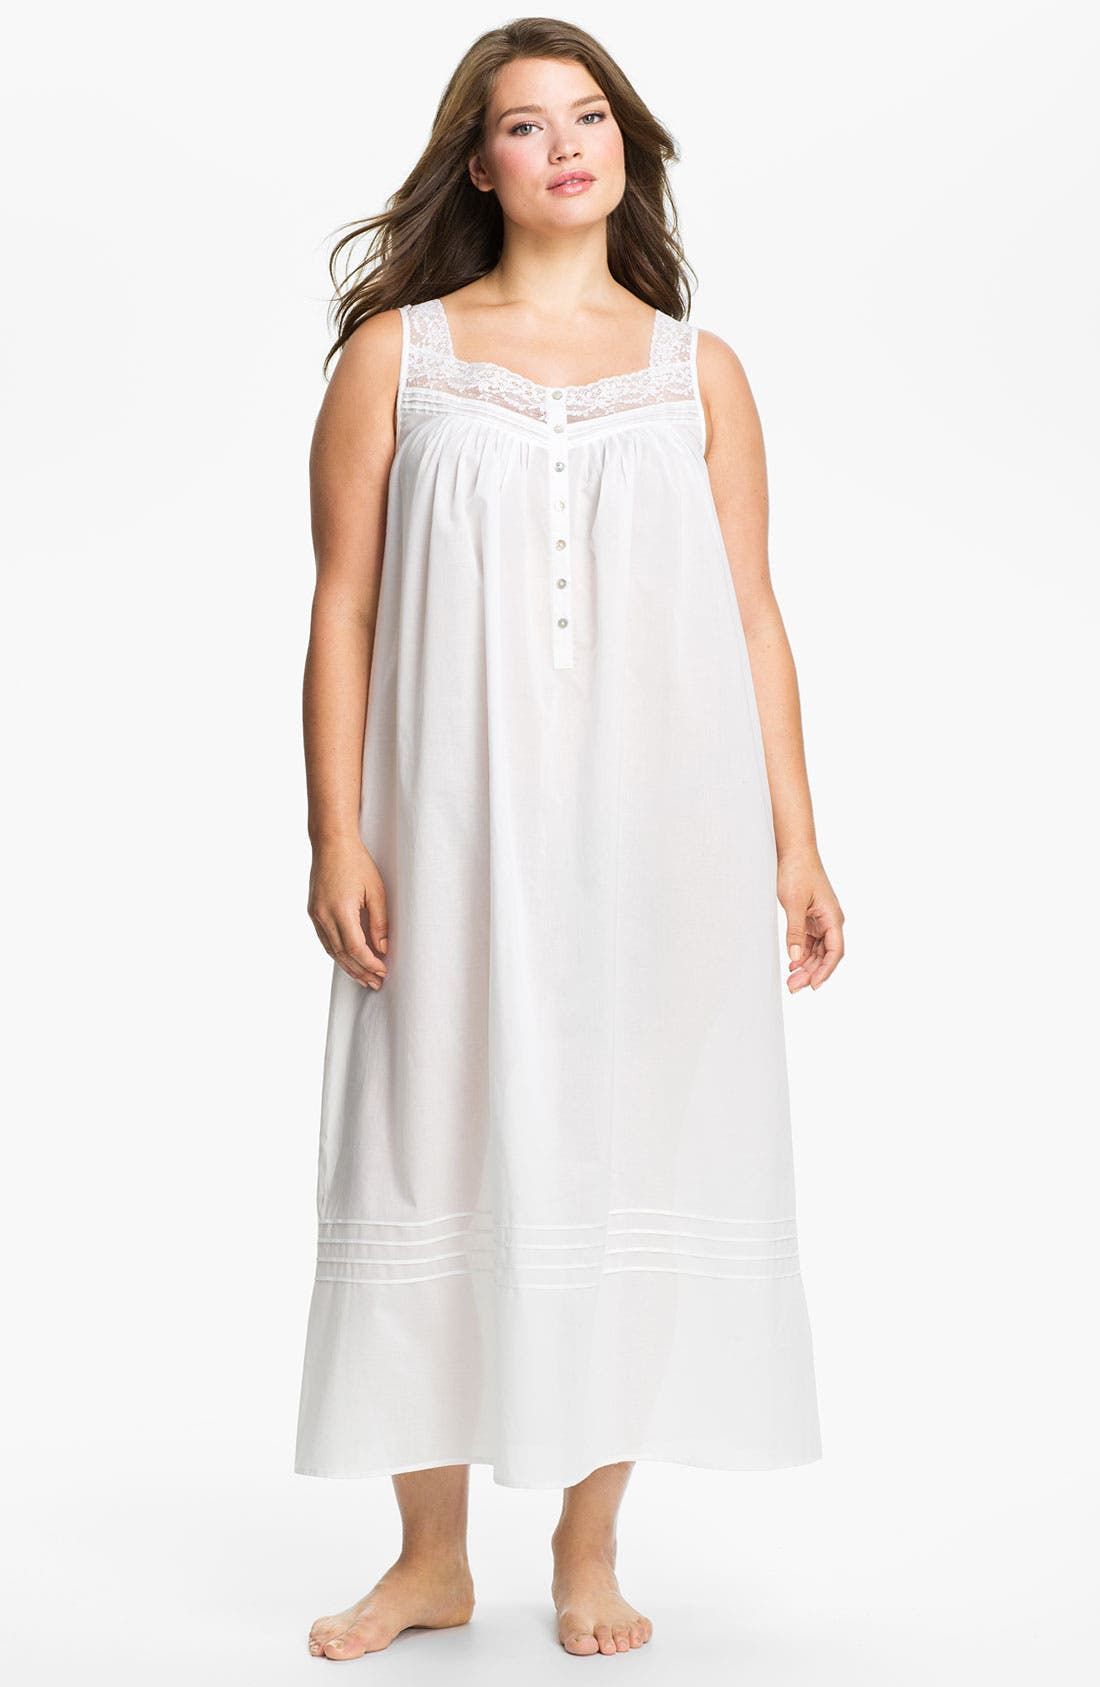 Main Image - Eileen West Lace Trim Sleeveless Nightgown (Plus Size)